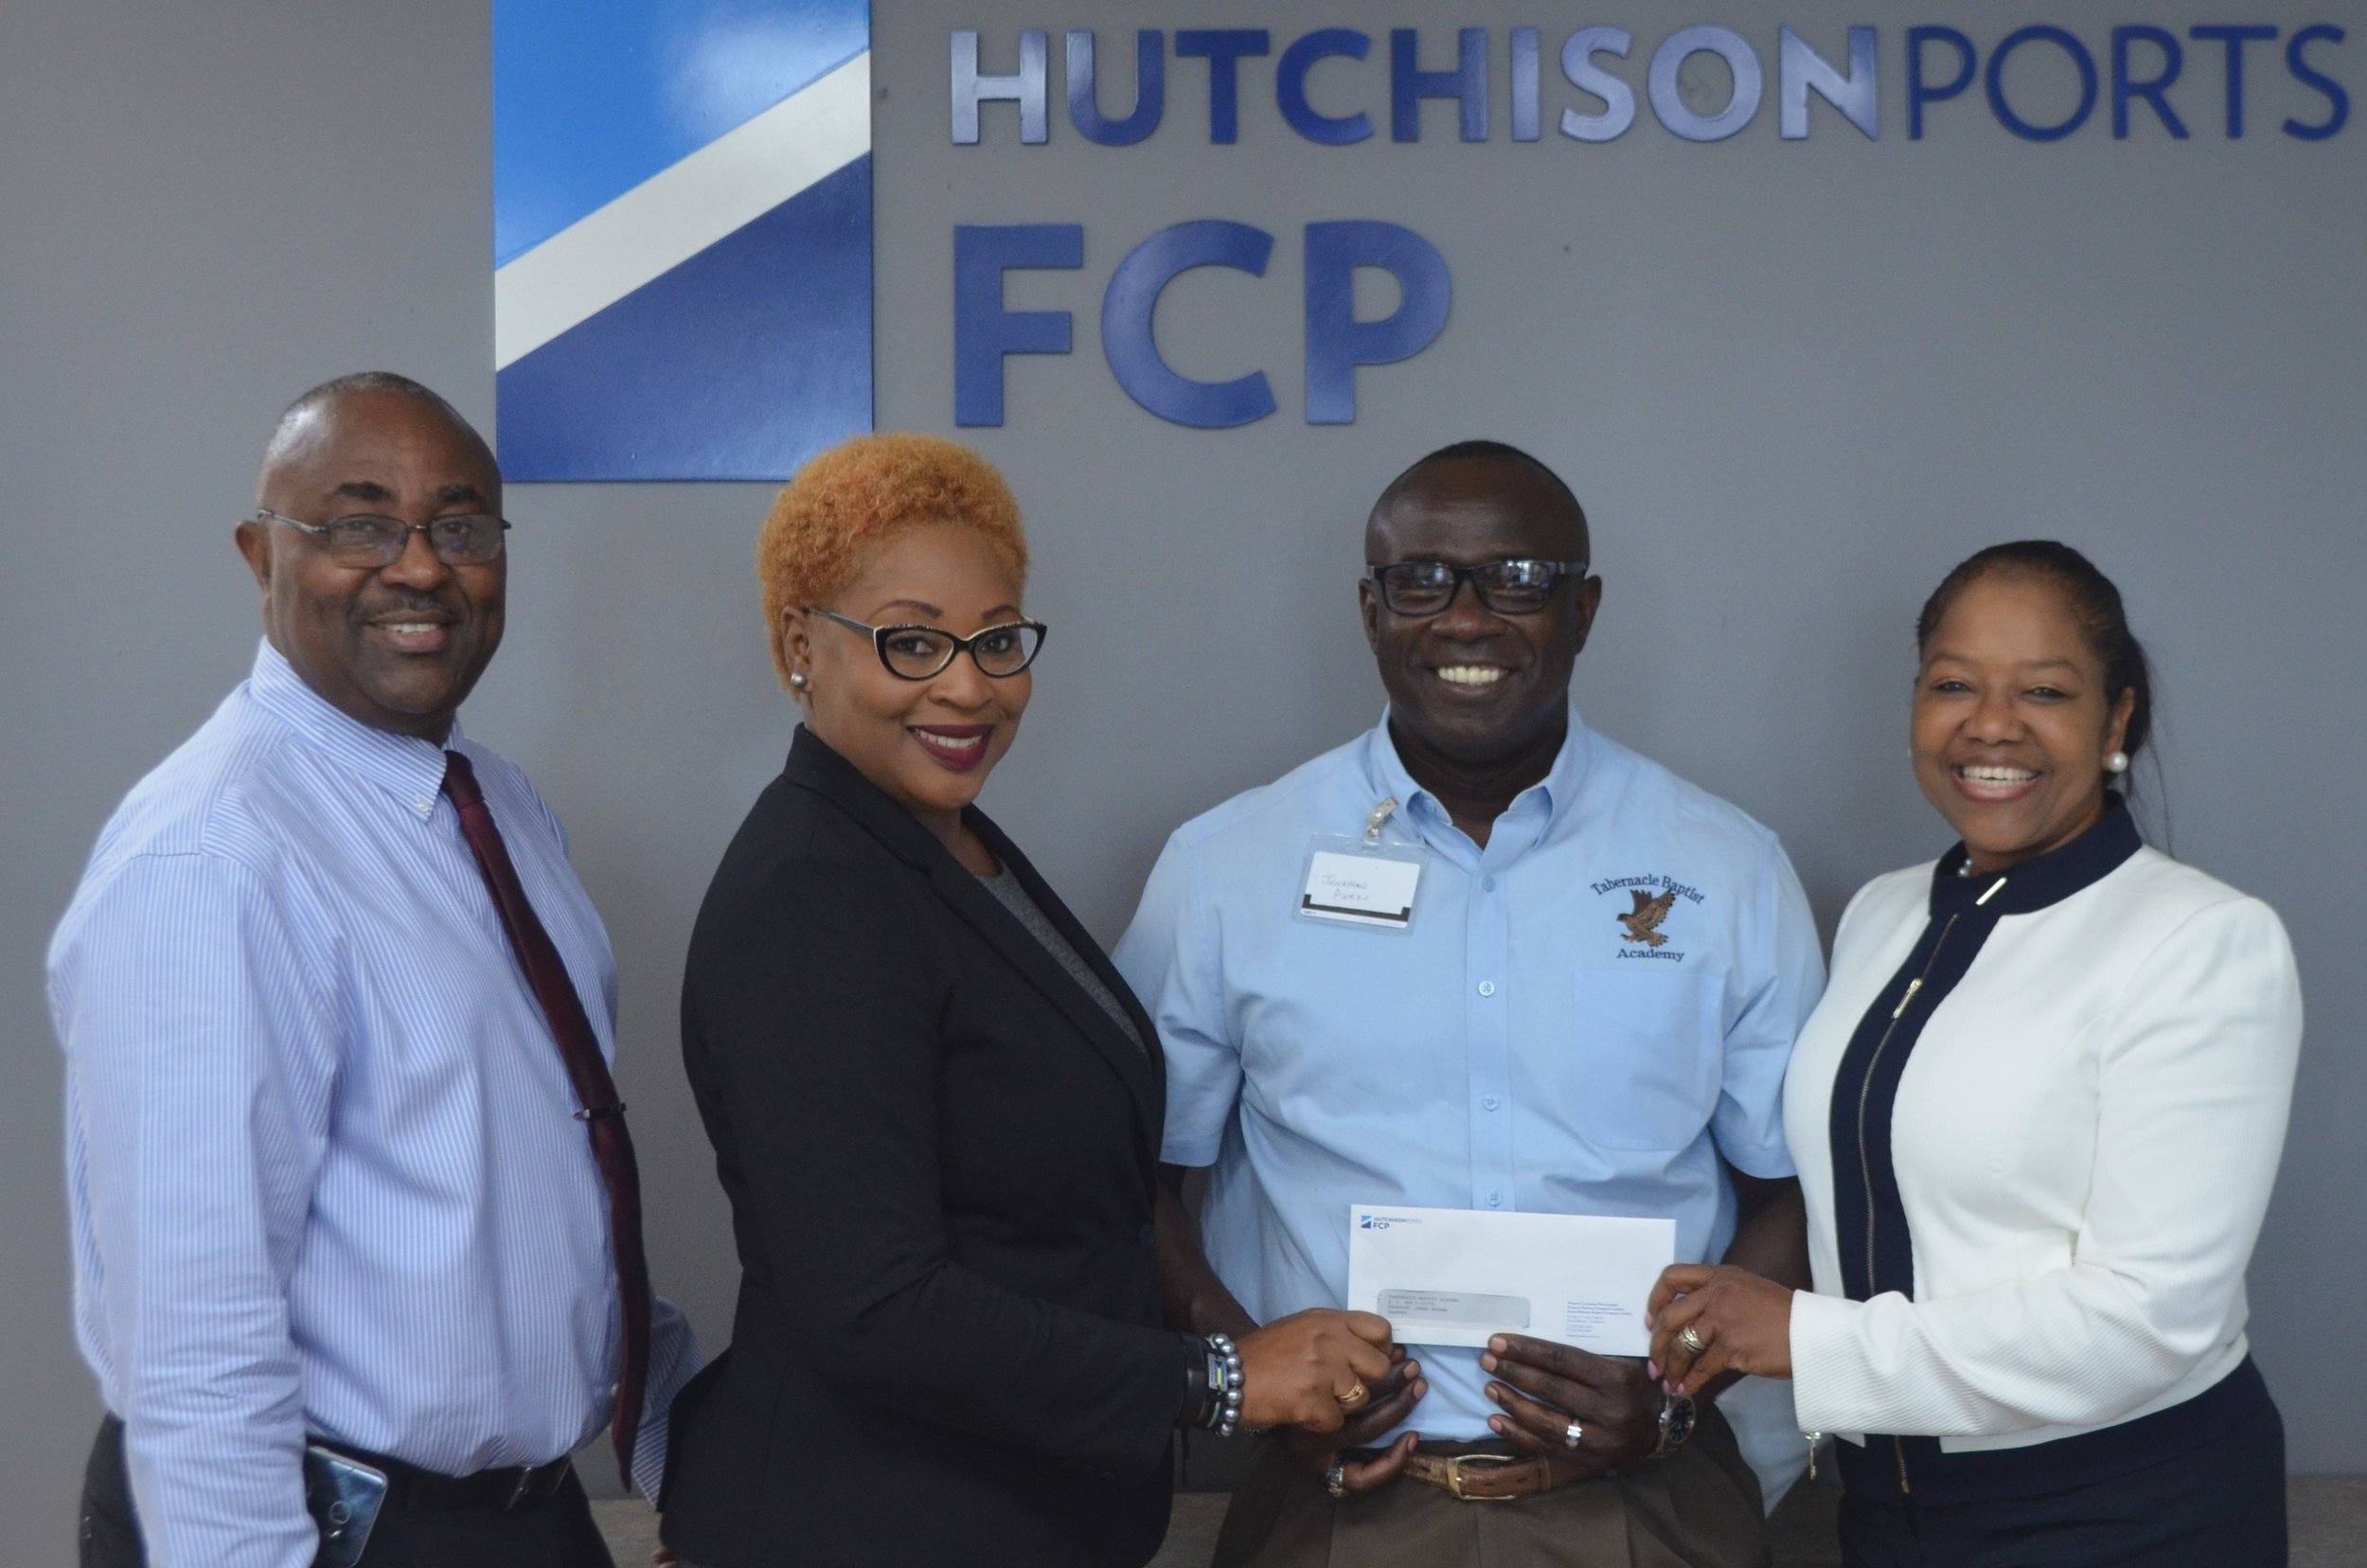 From Left to Right:  Captain Orlando Forbes, Port Director, Hutchison Ports FHC, Ms. Chanan Frtiz-Jones, Airport Director, Hutchison Ports, GBAC, Mr. Norris Bain, Deputy Administrator, Tabernacle Baptist Christian Academy and Sherry Brookes, Corporate\Government Affairs Director, Hutchison Ports FCP.